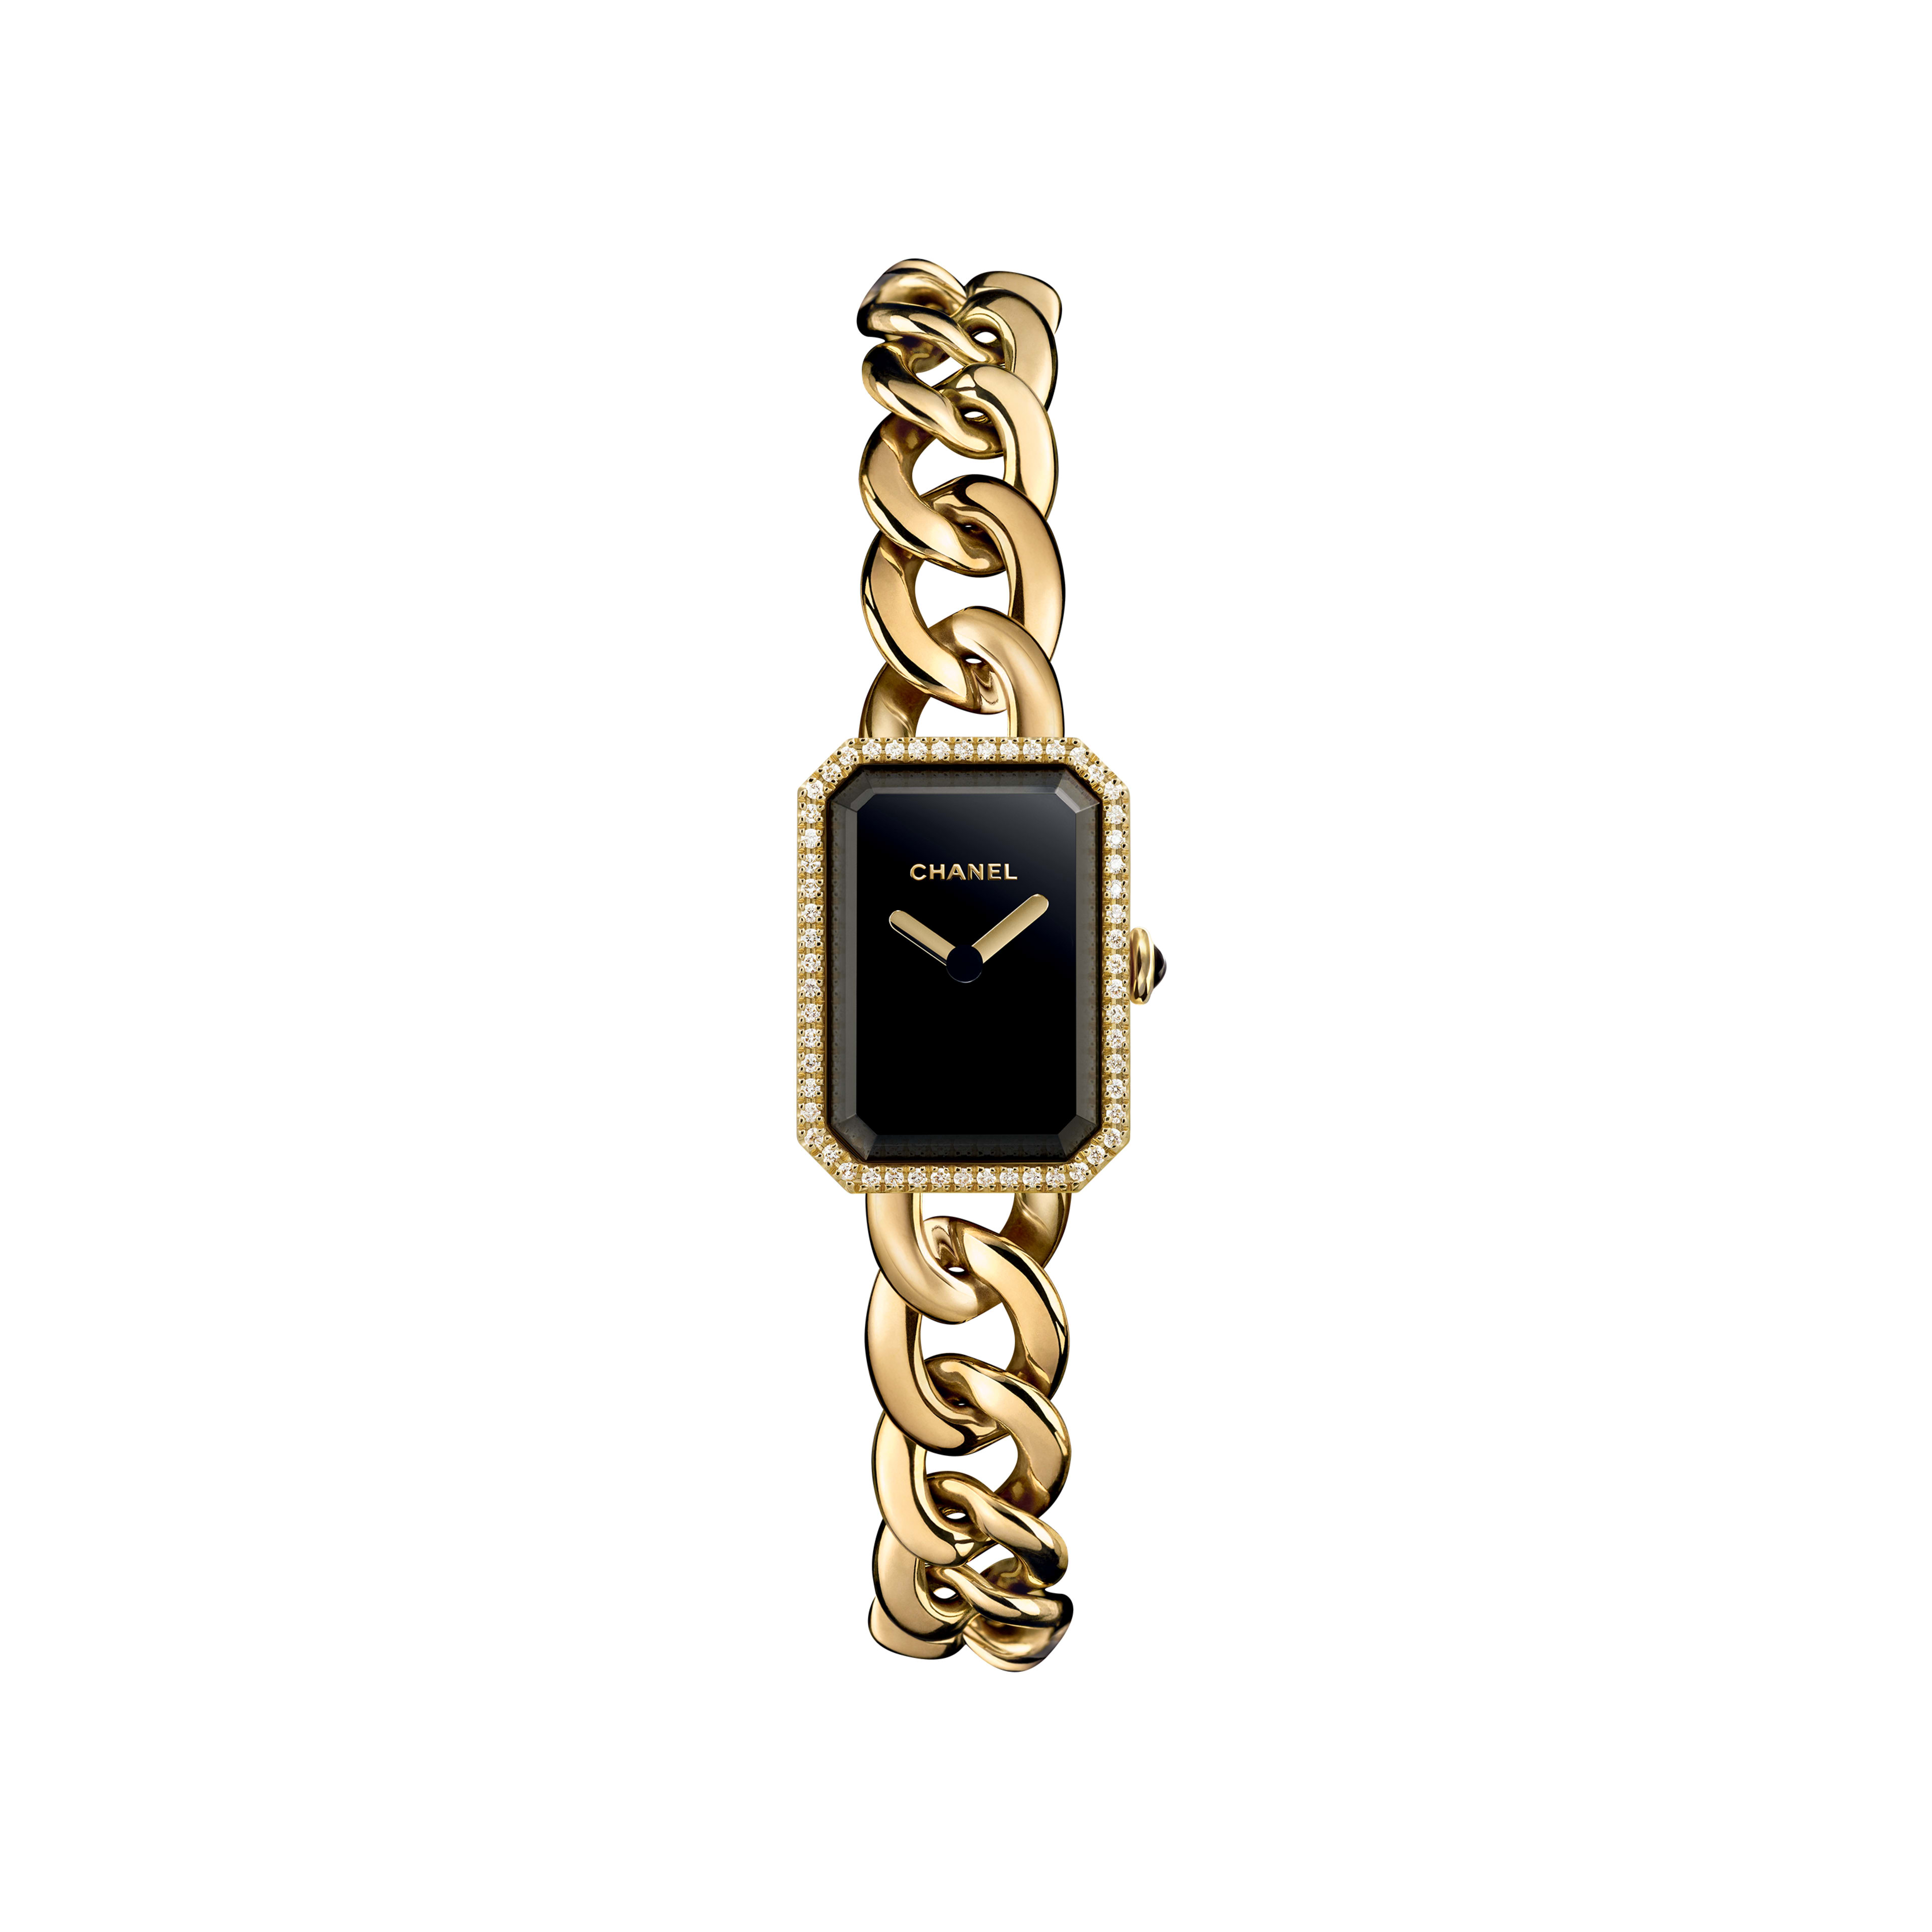 Chanel Premiere Chain H3258 In Yellow Gold